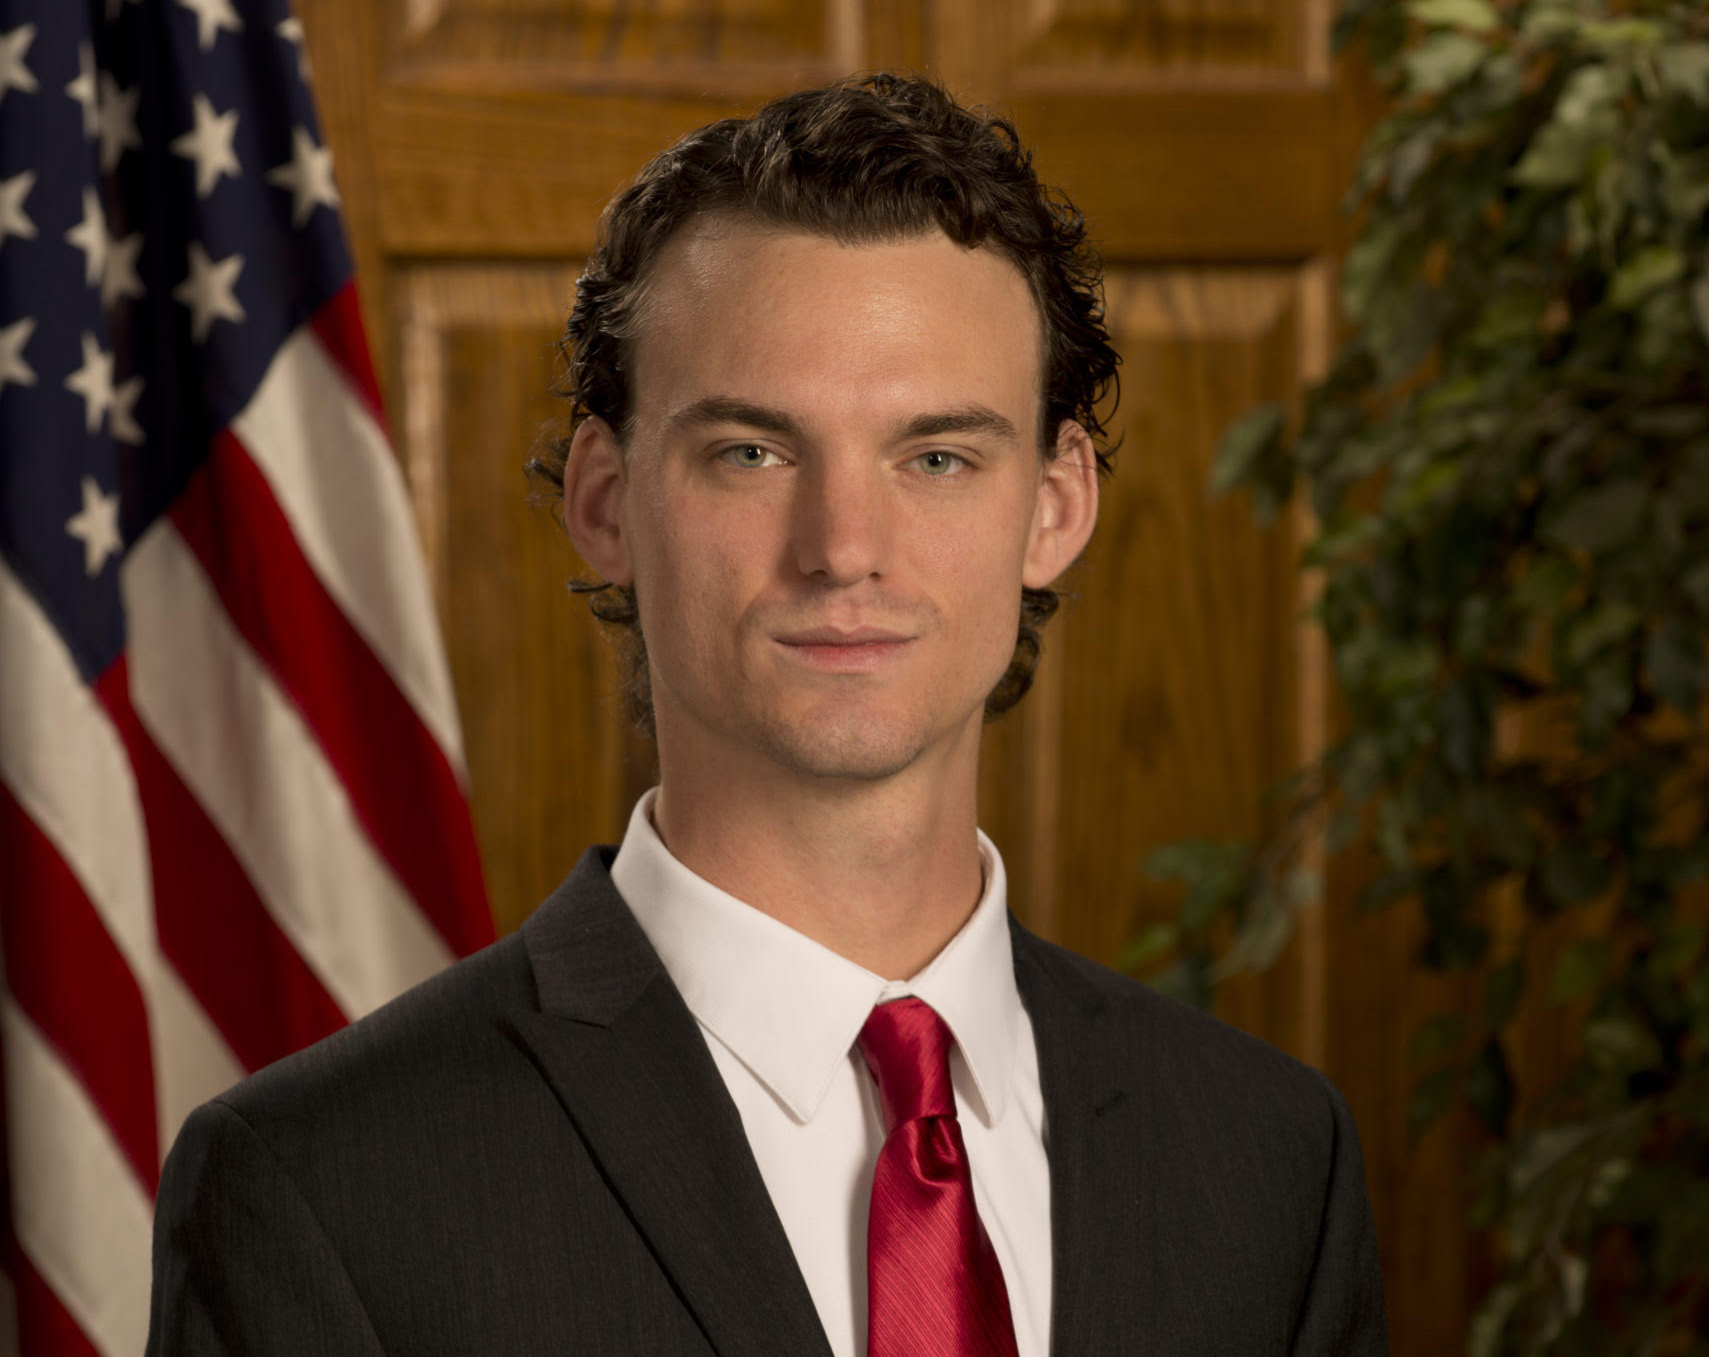 Preston Gabriel Nelson, 8th Congressional District Libertarian nominee, 2020 election candidate questionnaire